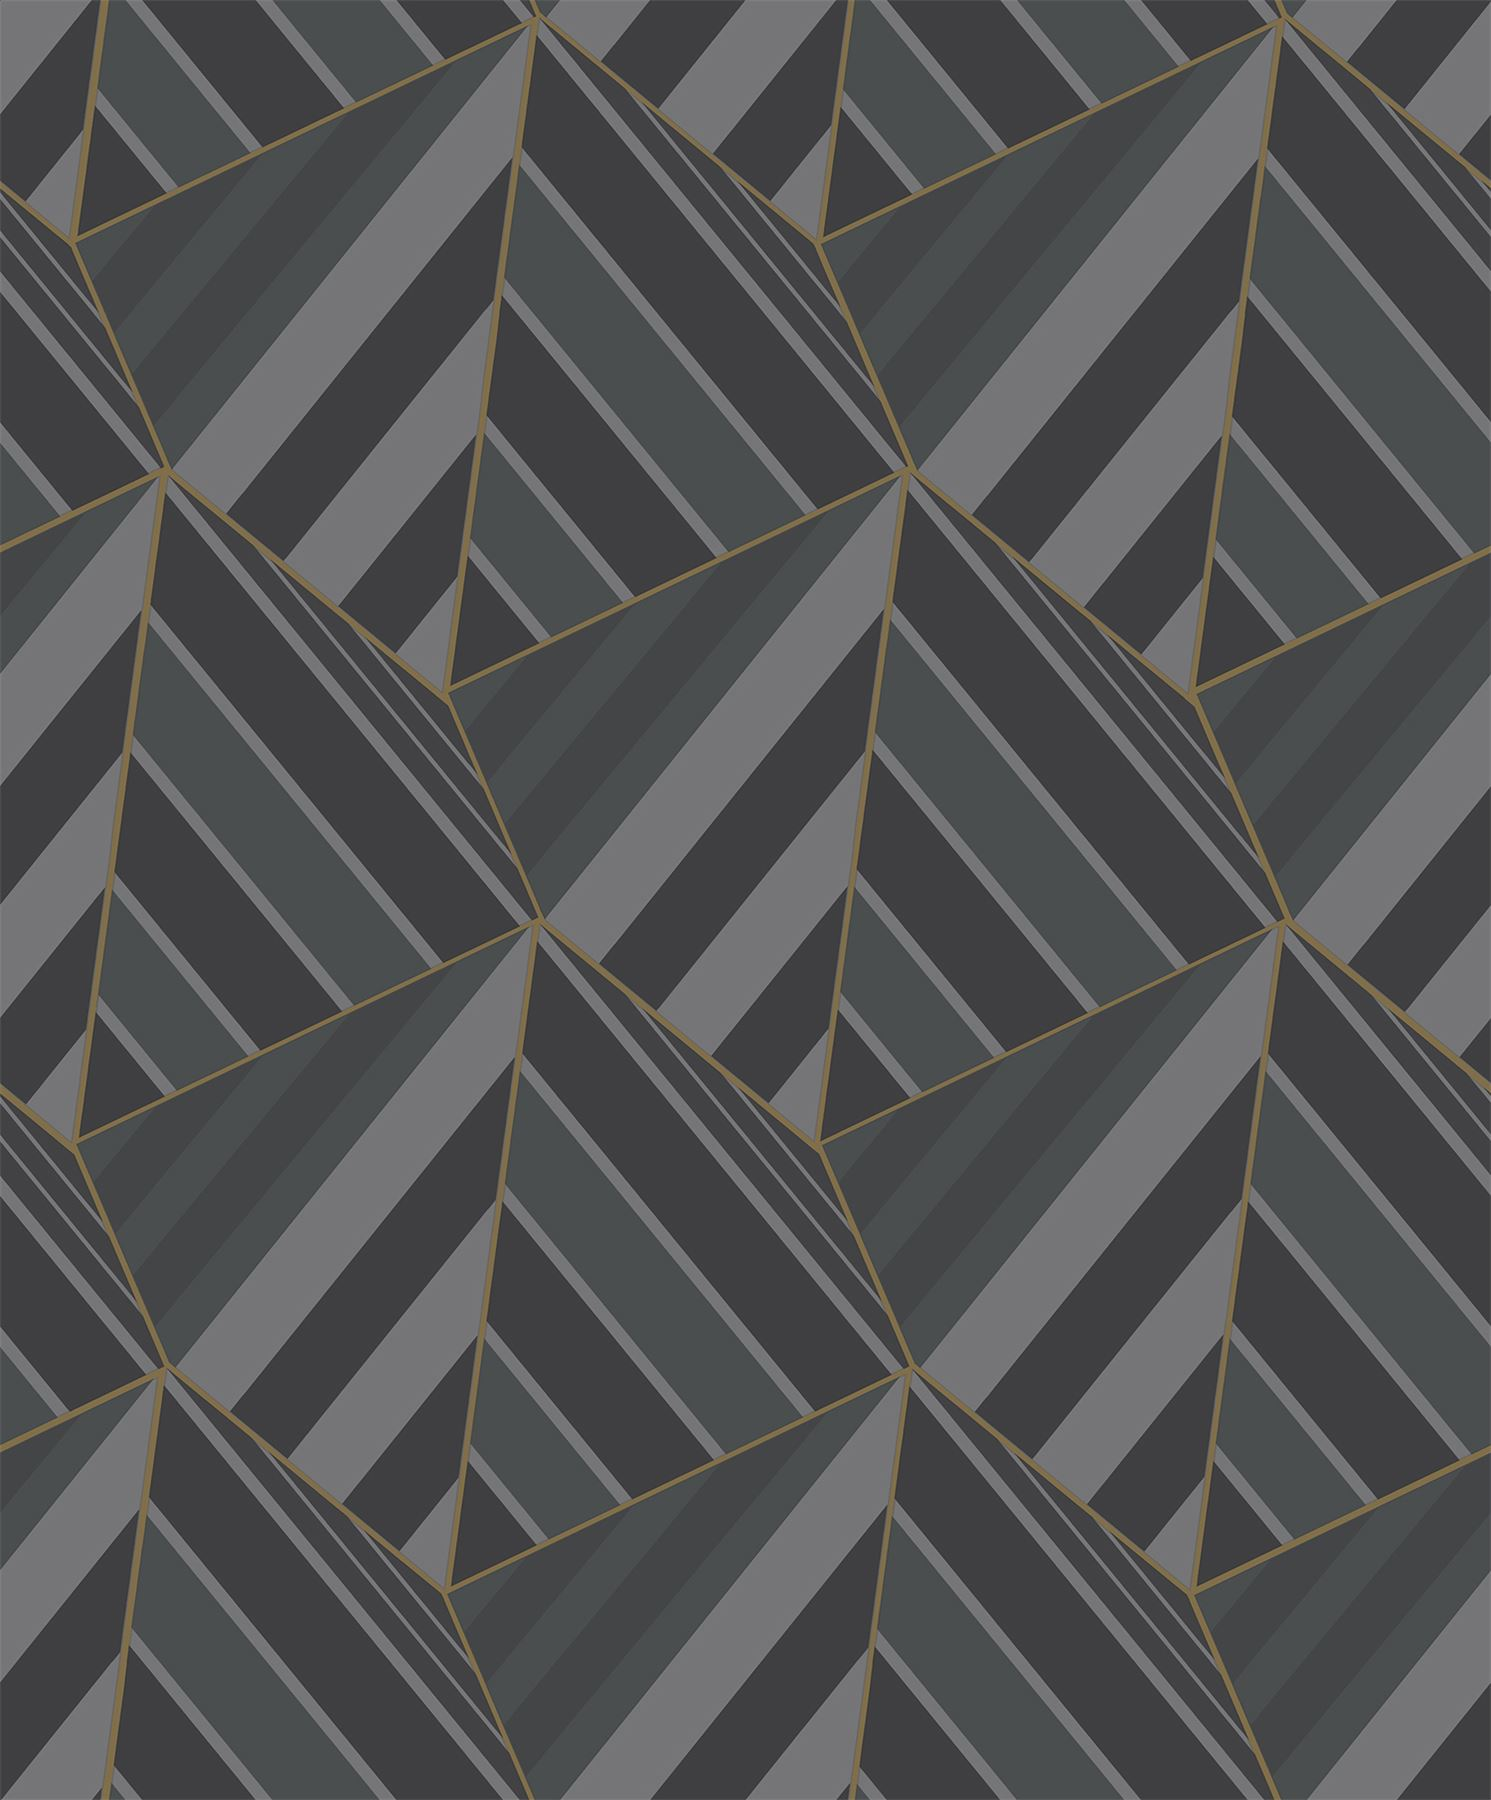 Details About 3d Triangle Geometric Wallpaper Black Grey Metallic Gold Textured Grandeco